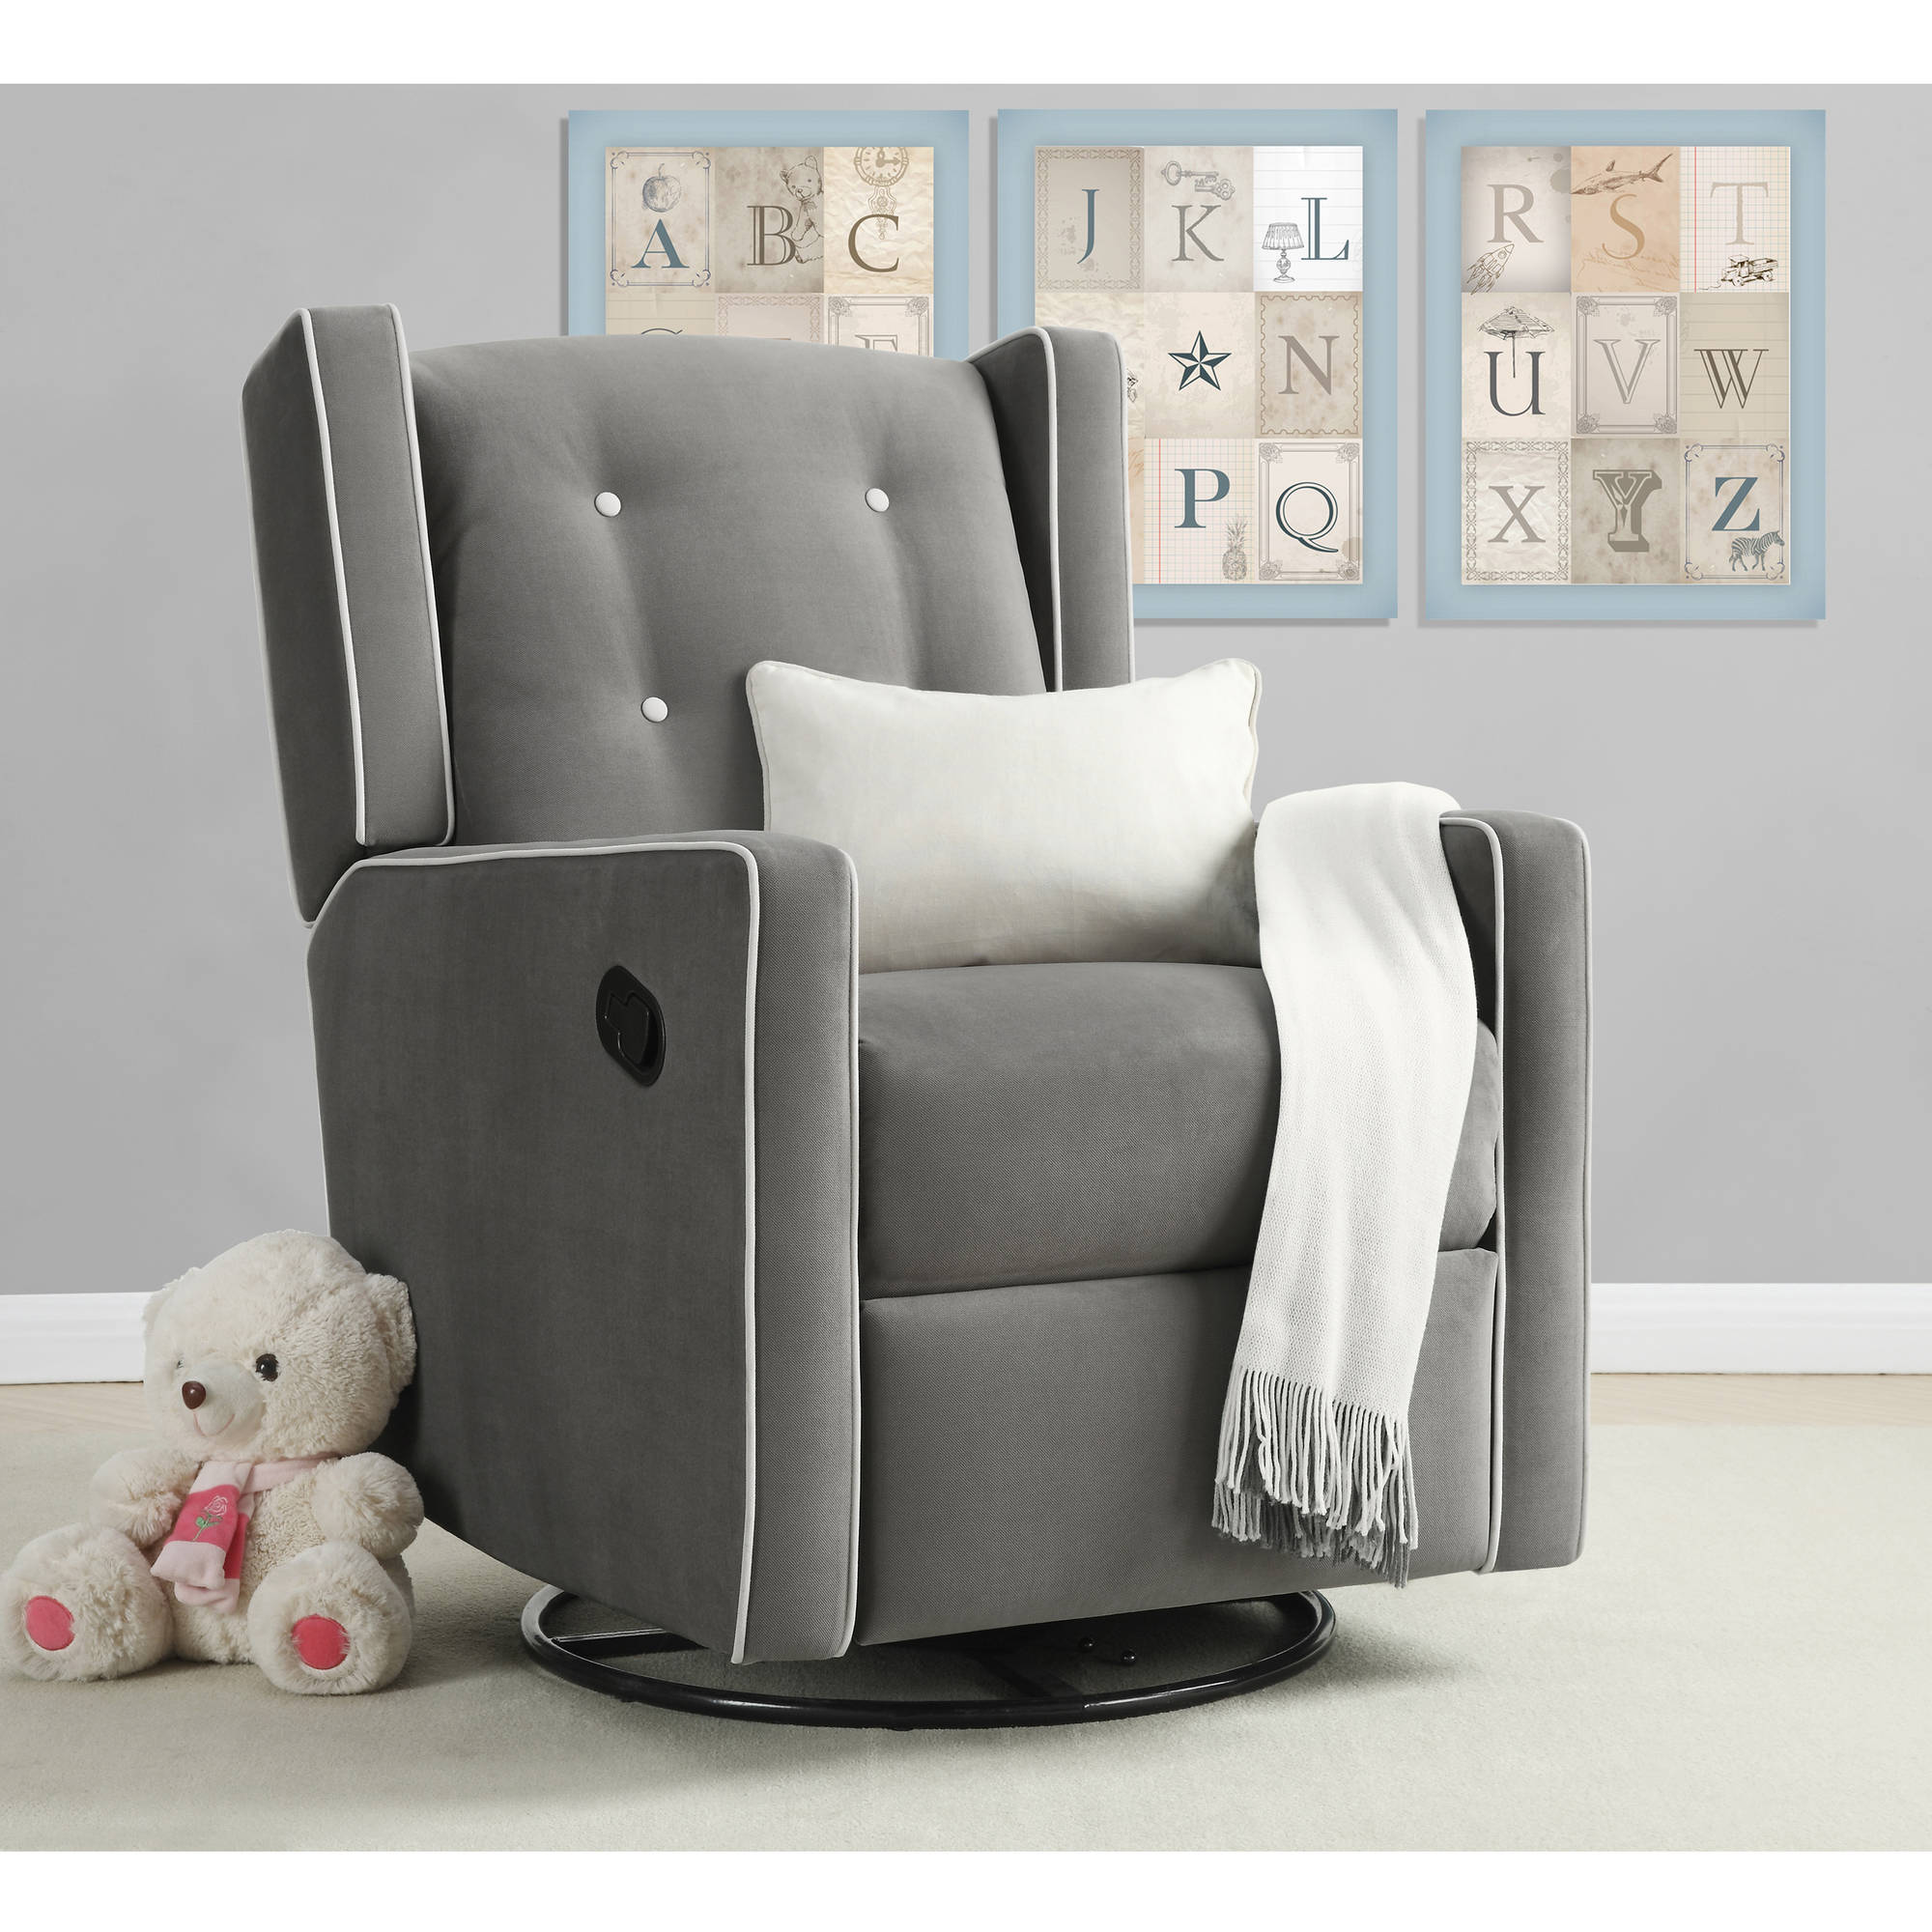 Baby Relax Mikayla Swivel Gliding Recliner, (Choose Your Color)